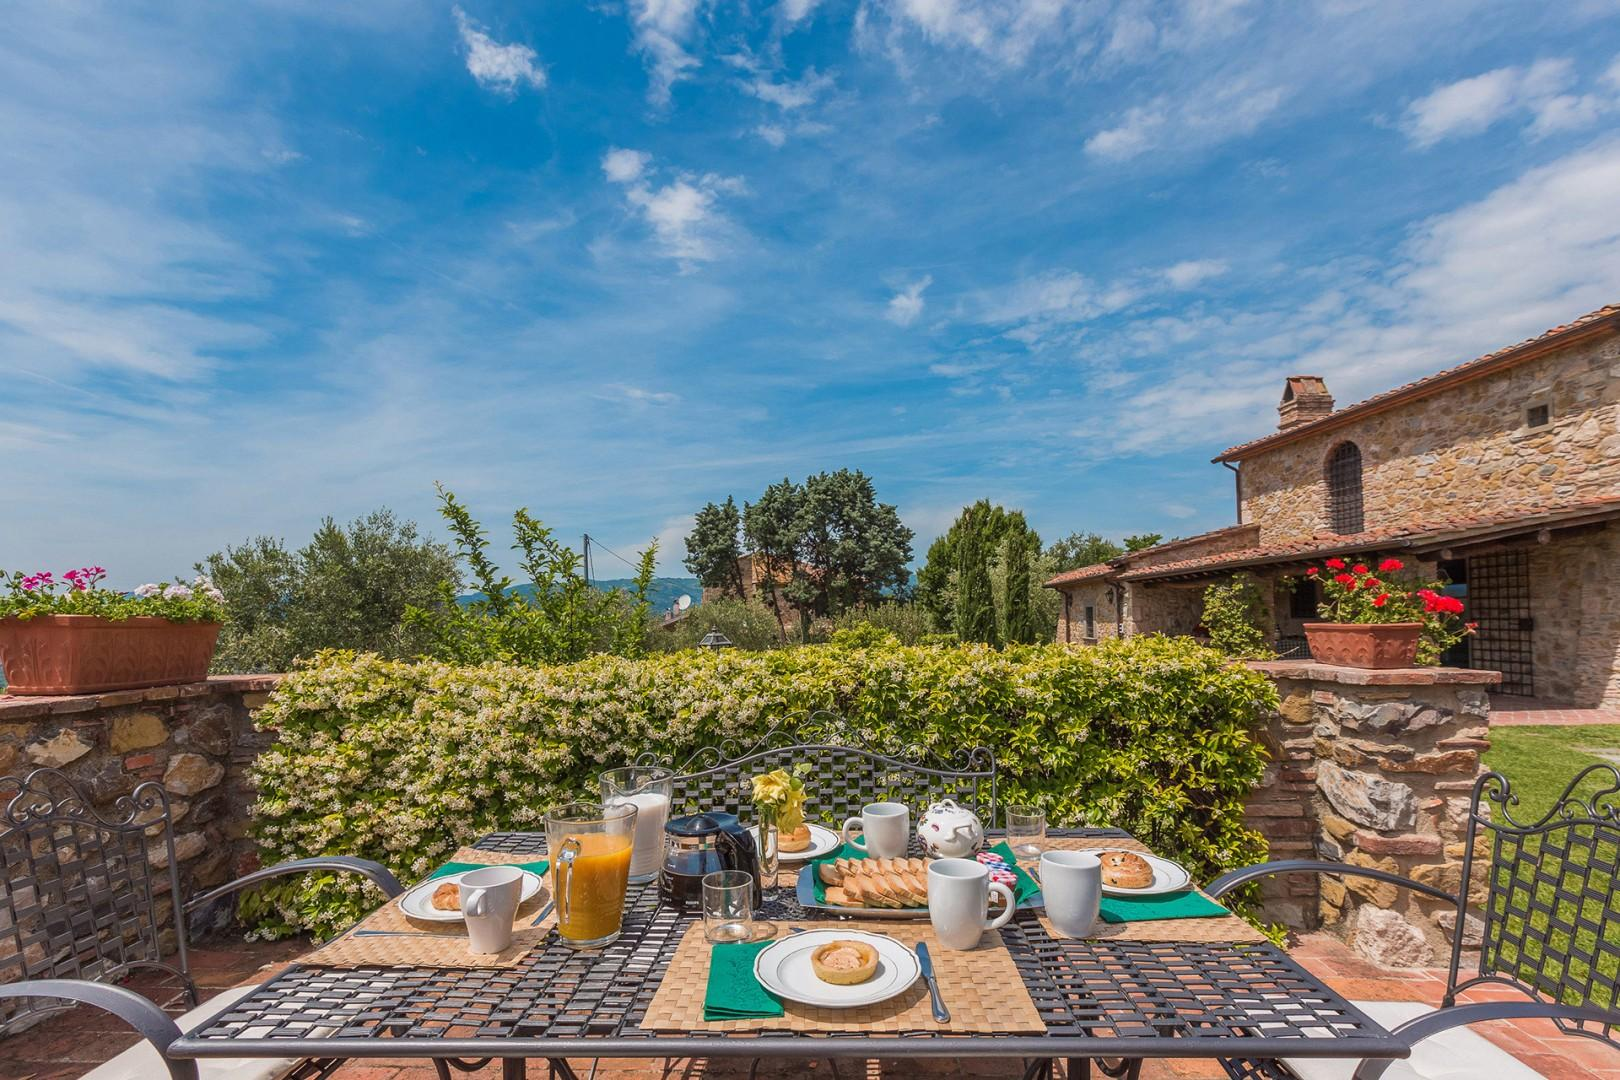 Imagine your morning coffee in this verdant setting.